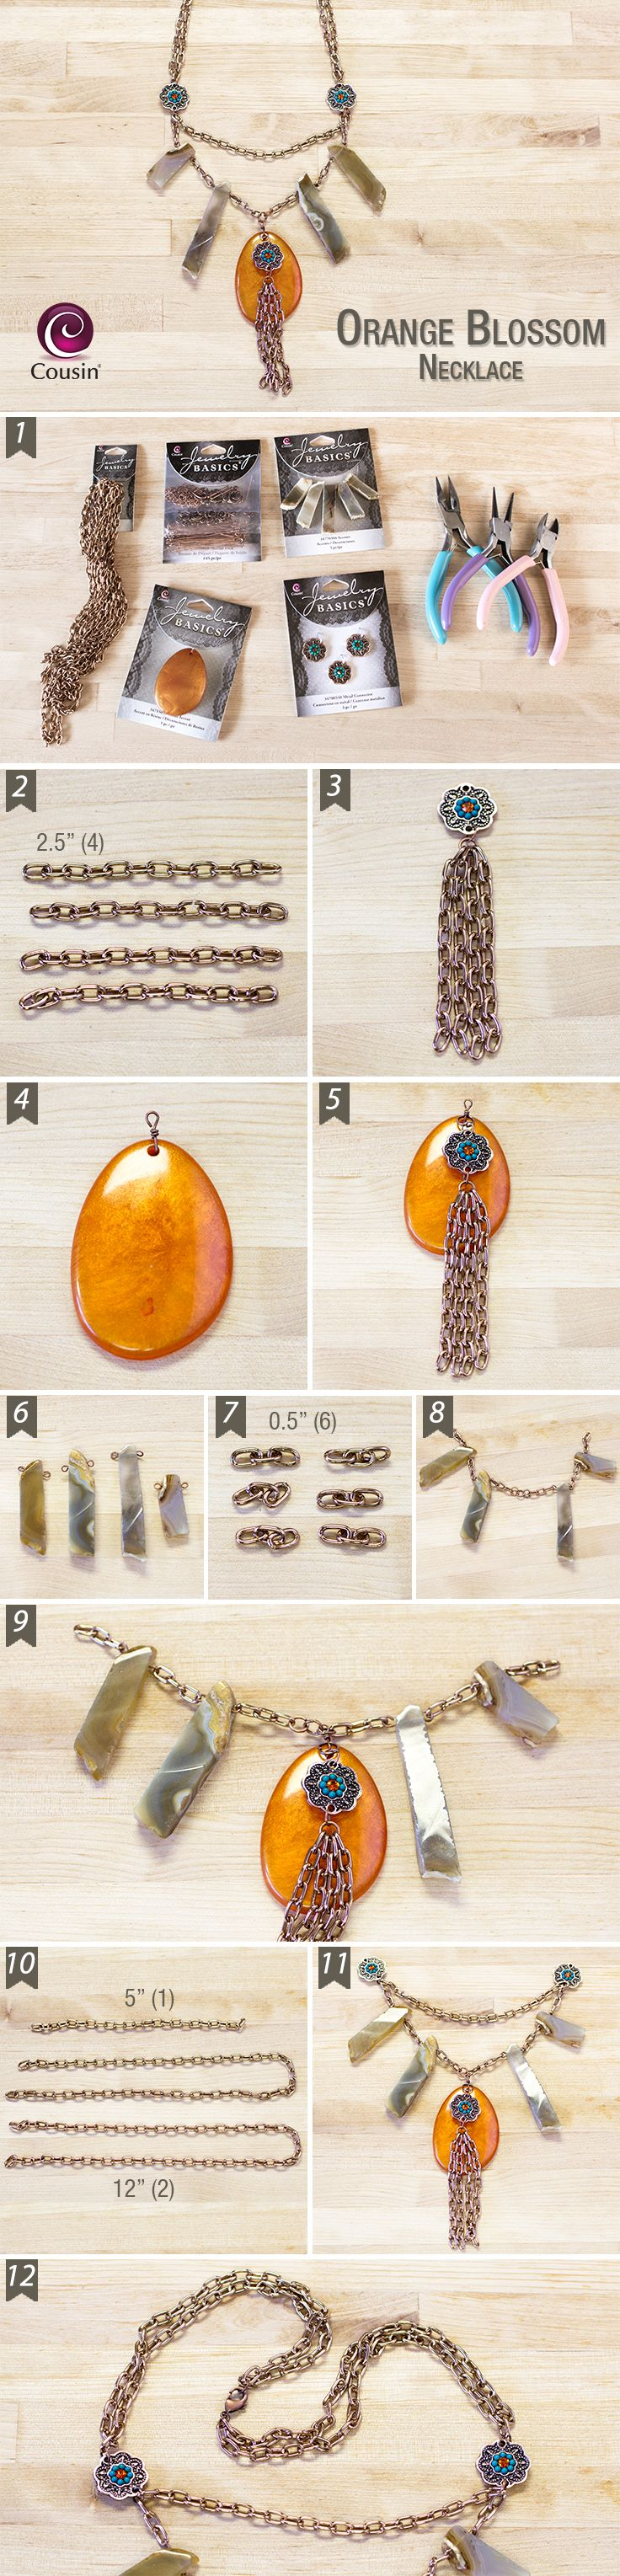 282 best Moore: Jewelry images on Pinterest